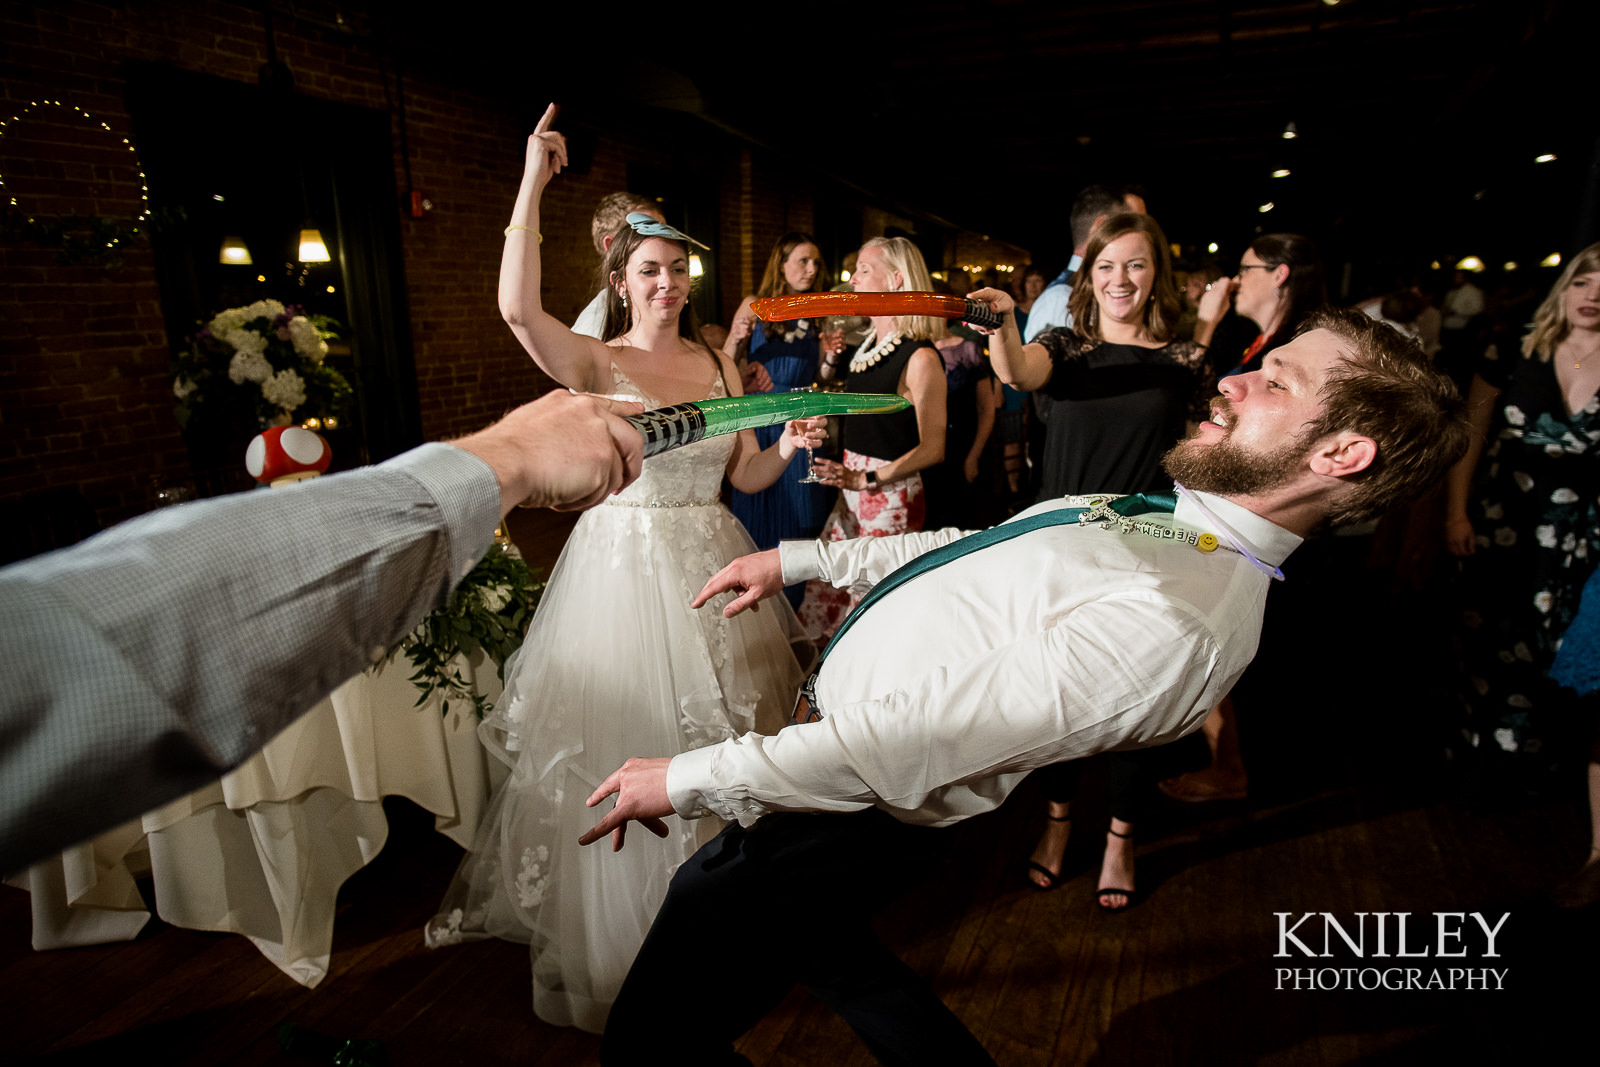 60-Pearl-St-Grill-Wedding-Reception-Buffalo-NY-Kniley-Photography-Star-Wars-May-the-4th.jpg